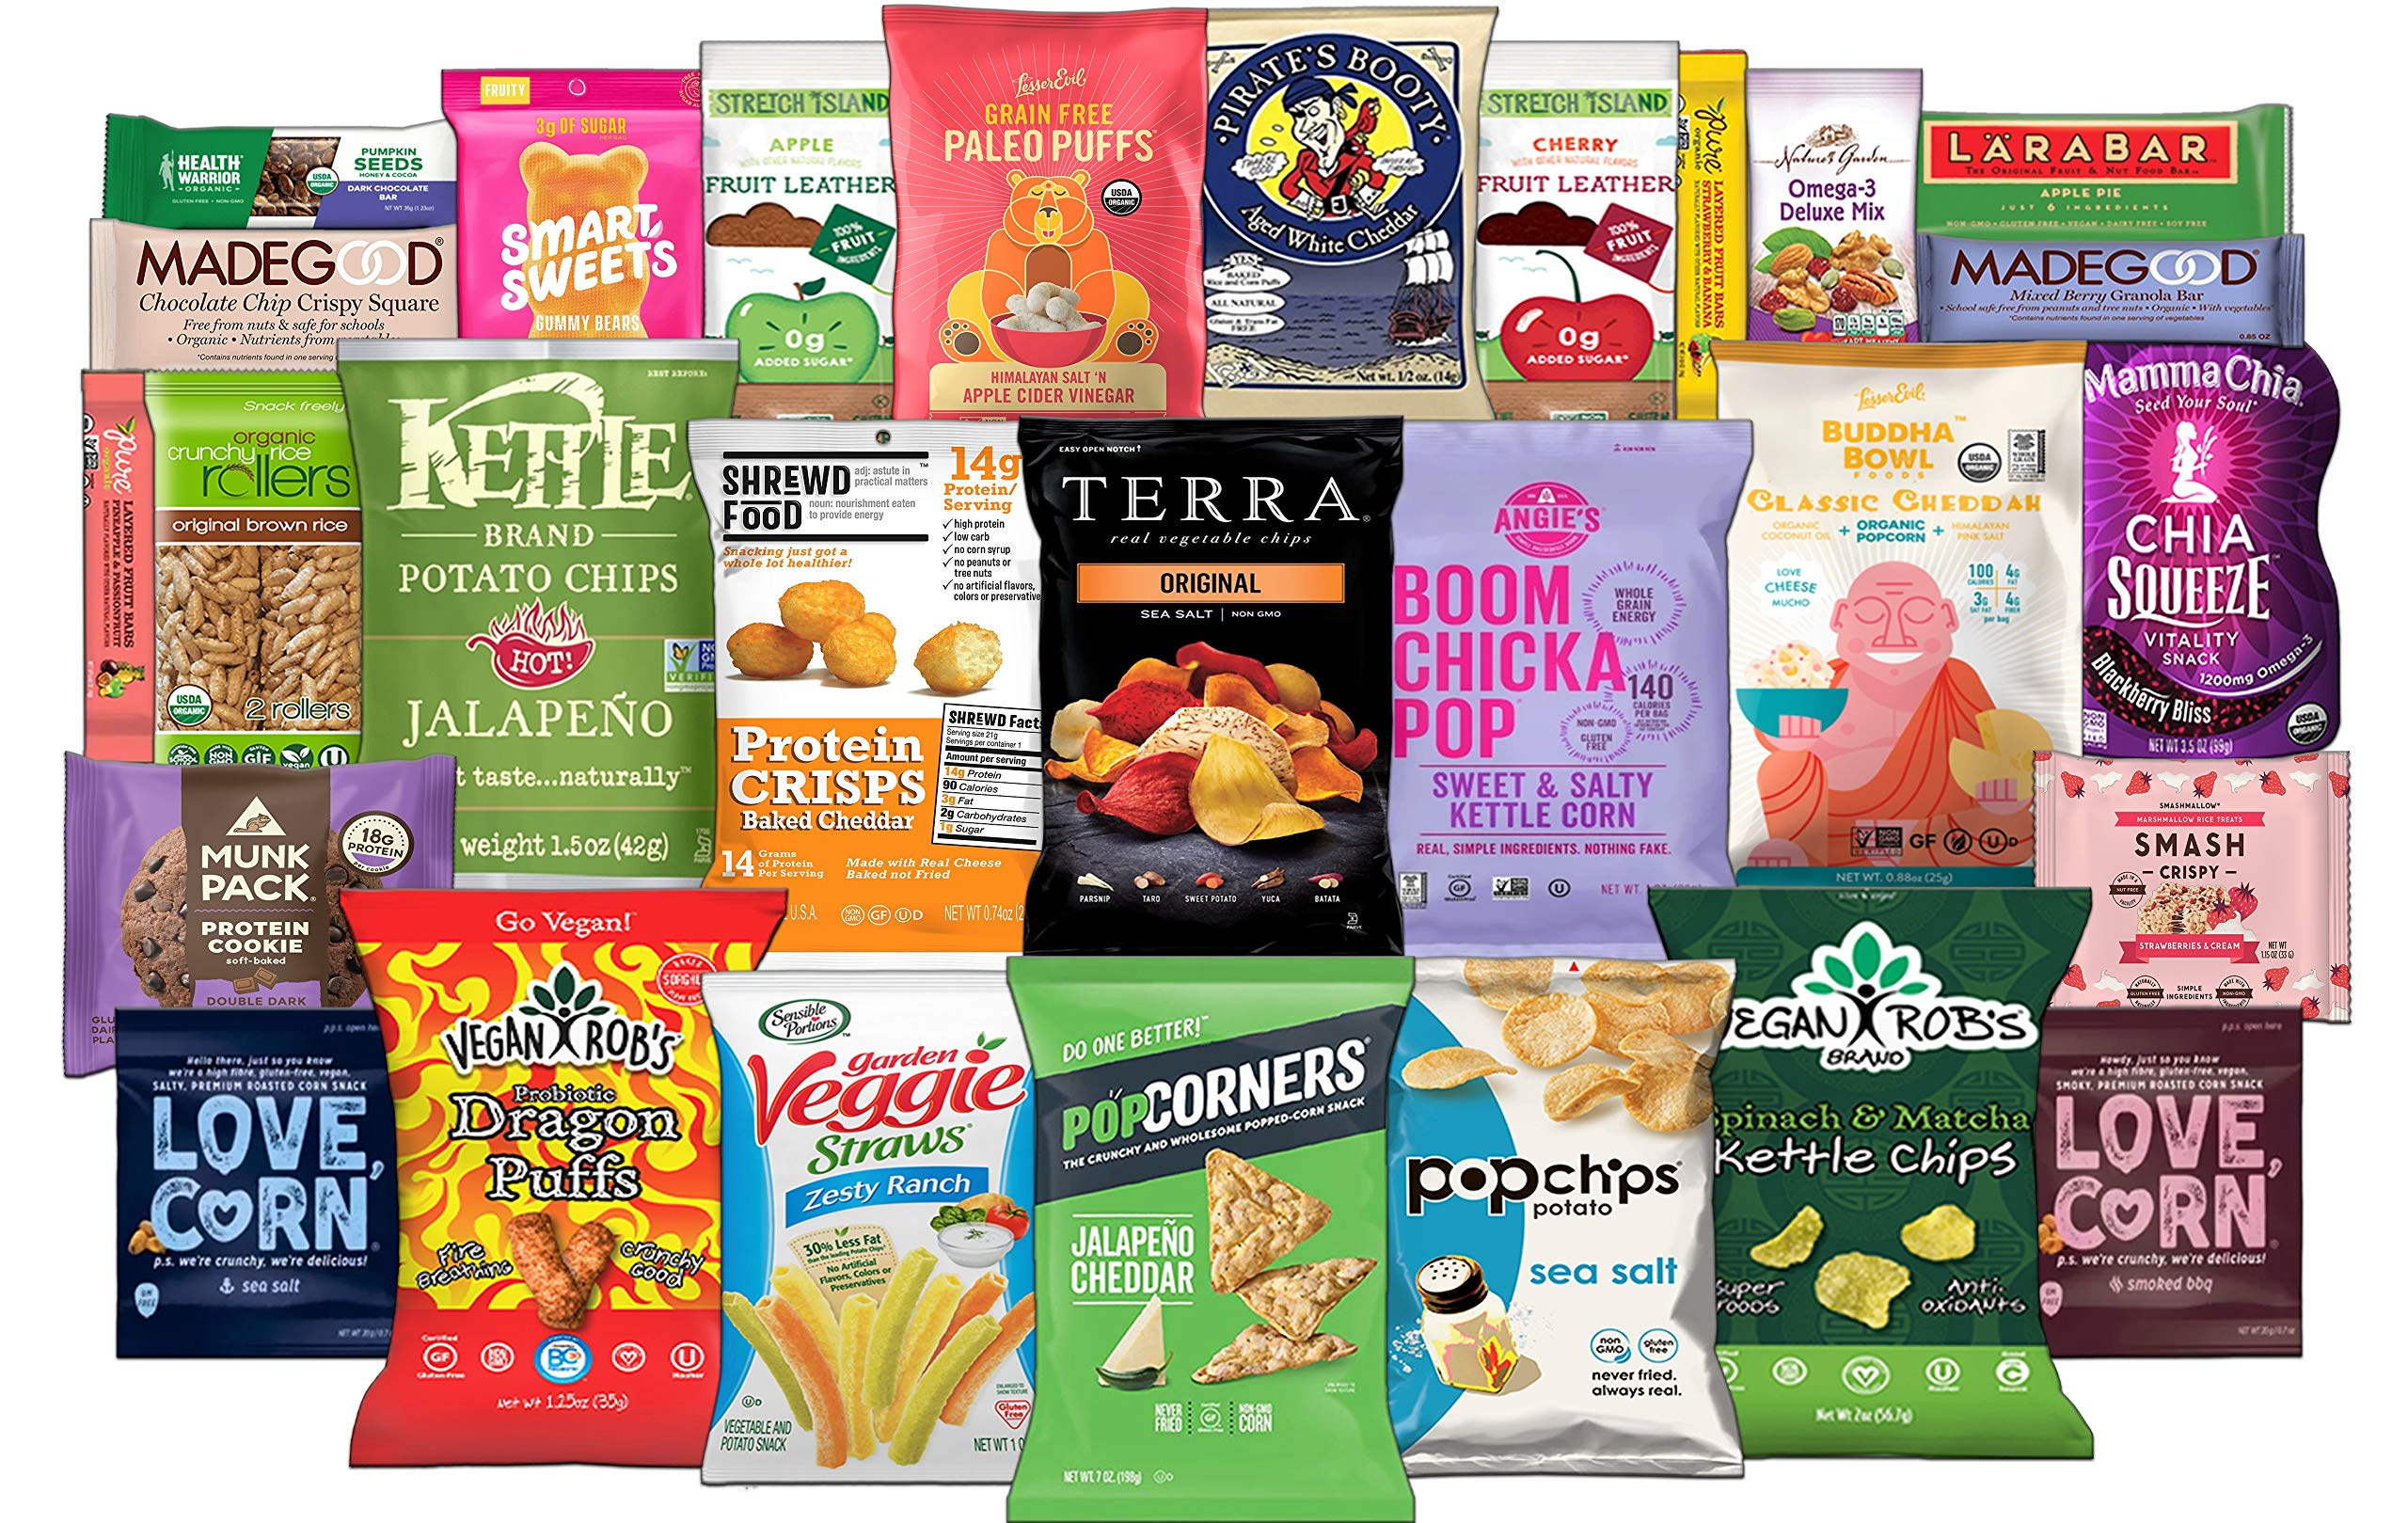 Premium Gluten Free Snacks Assortment Care Package - Variety of Chips, Puffs, Popcorn, Bars, Nuts, Fruit Snacks (28 Count) by Custom Treats